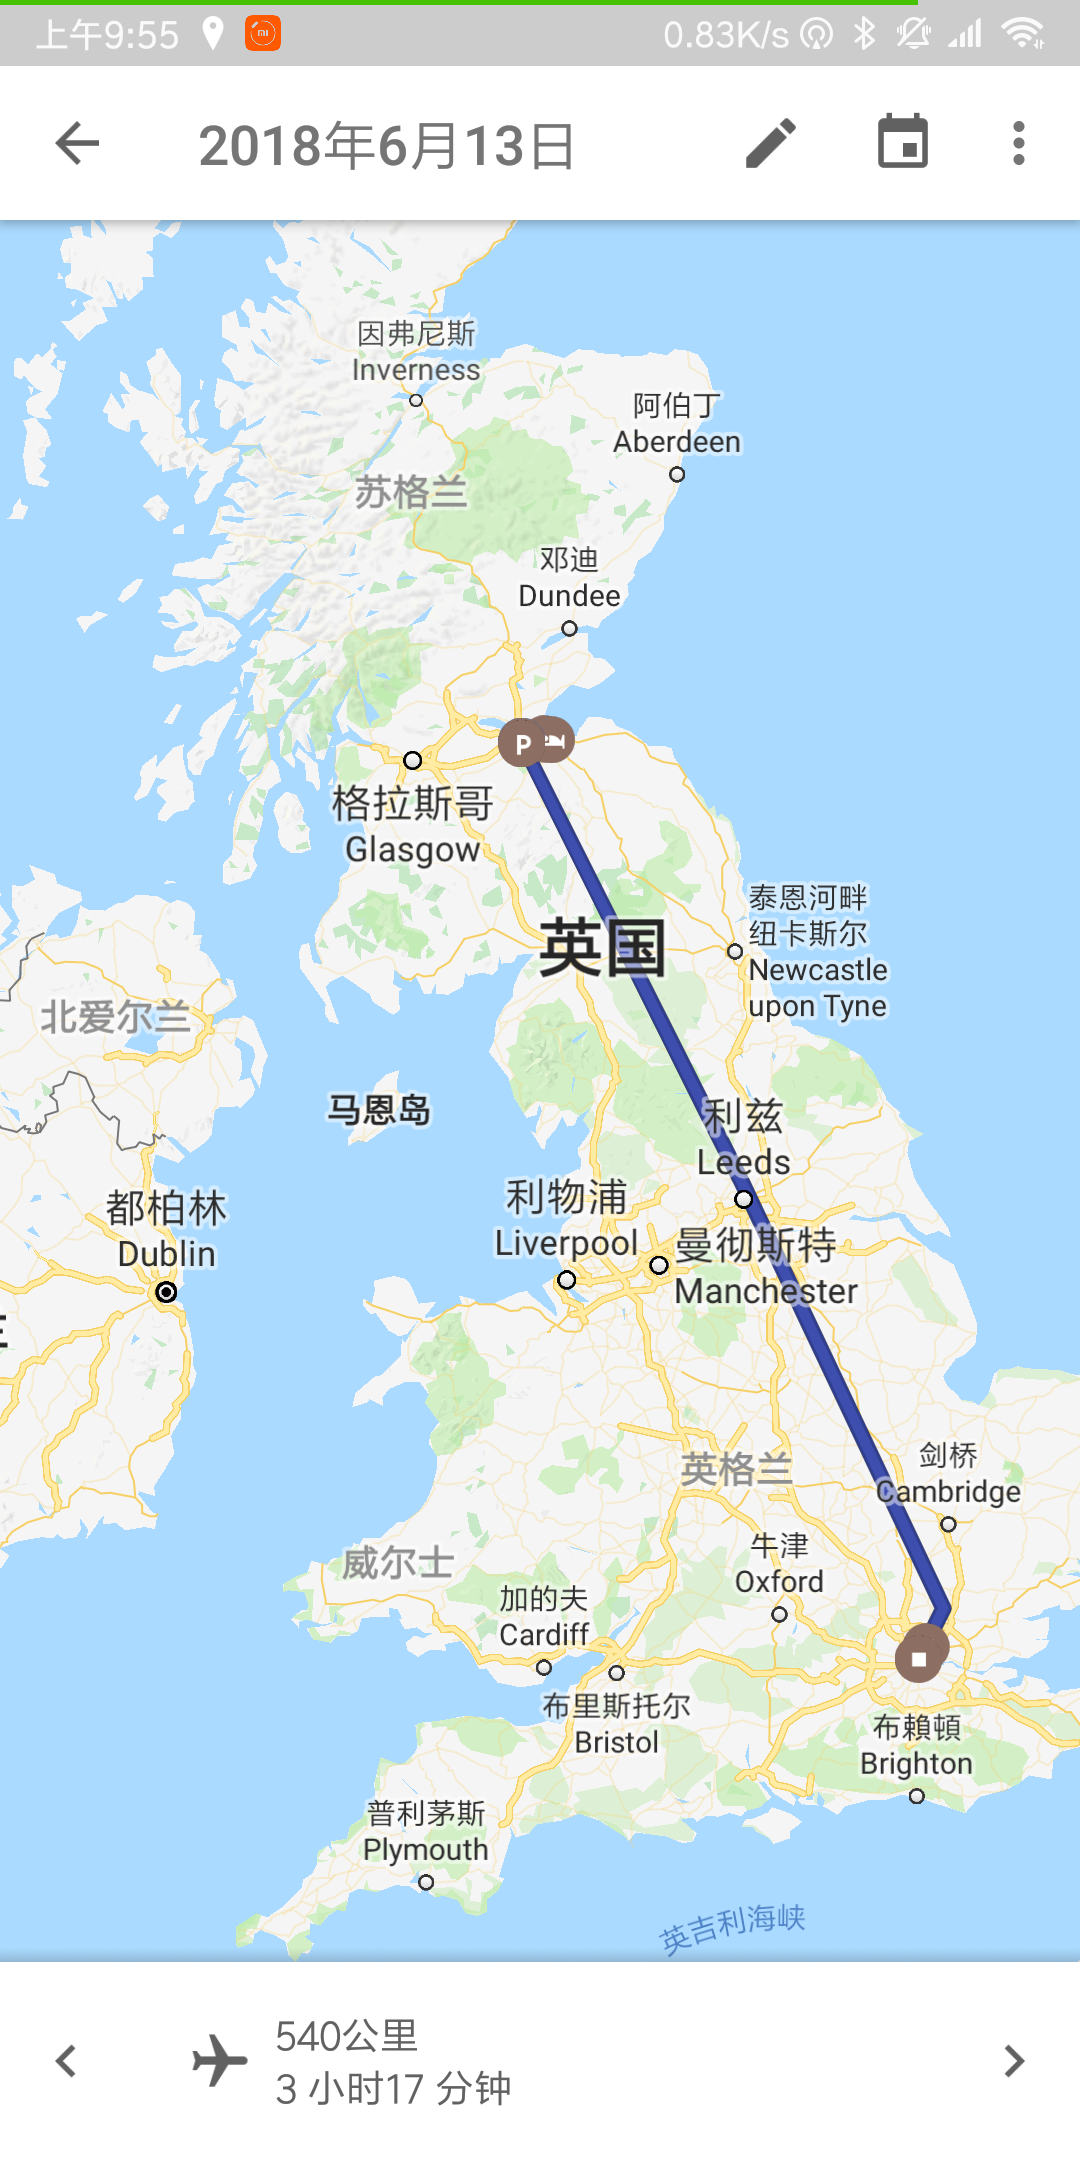 London to Edinburgh